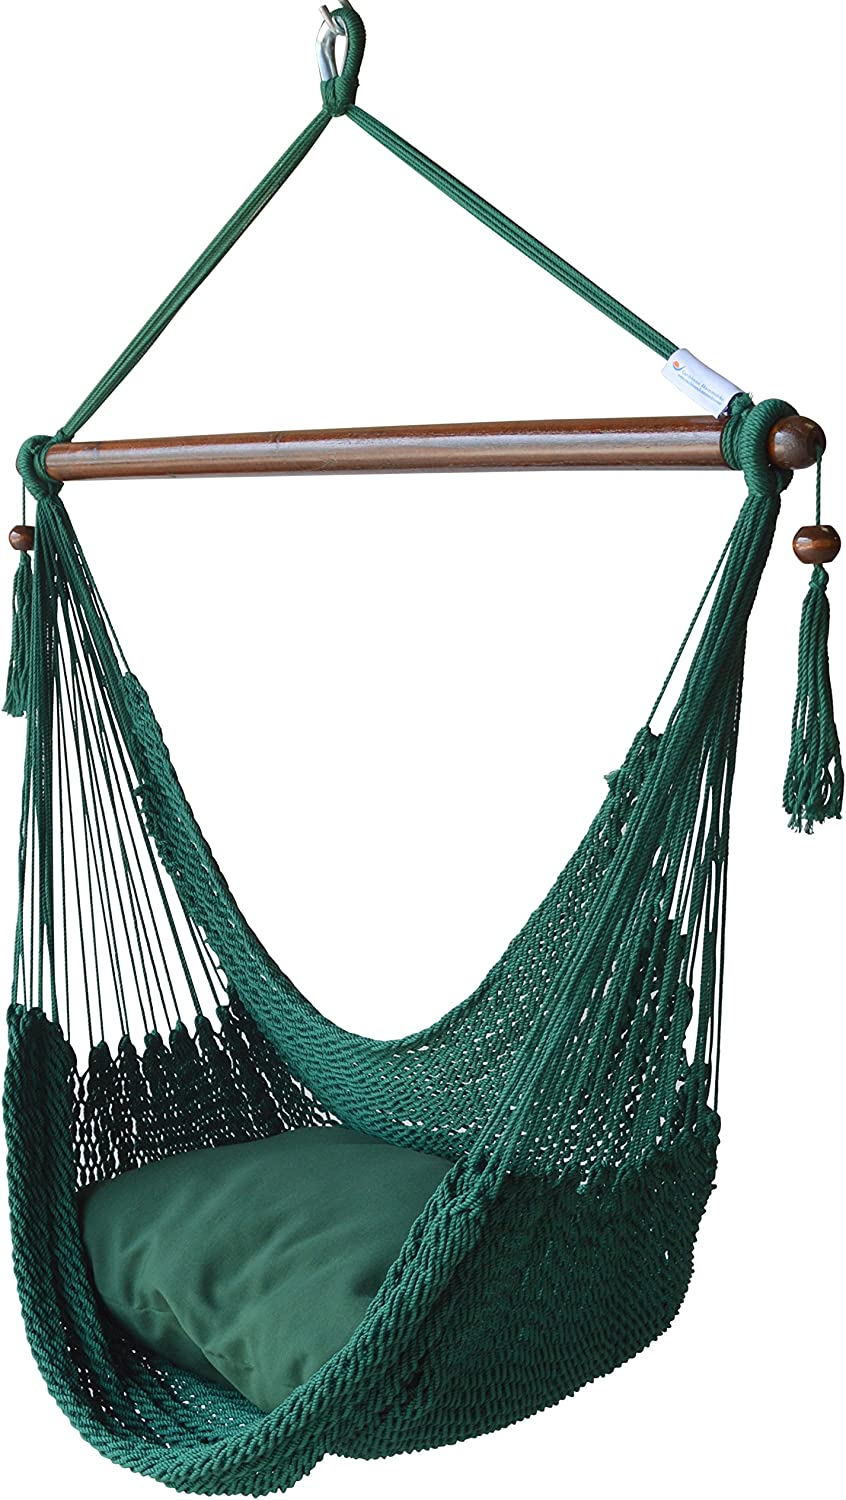 Caribbean Hammocks Hammock Chair with Footrest - 40 inch - Green - 200 lbs Weight Capacity